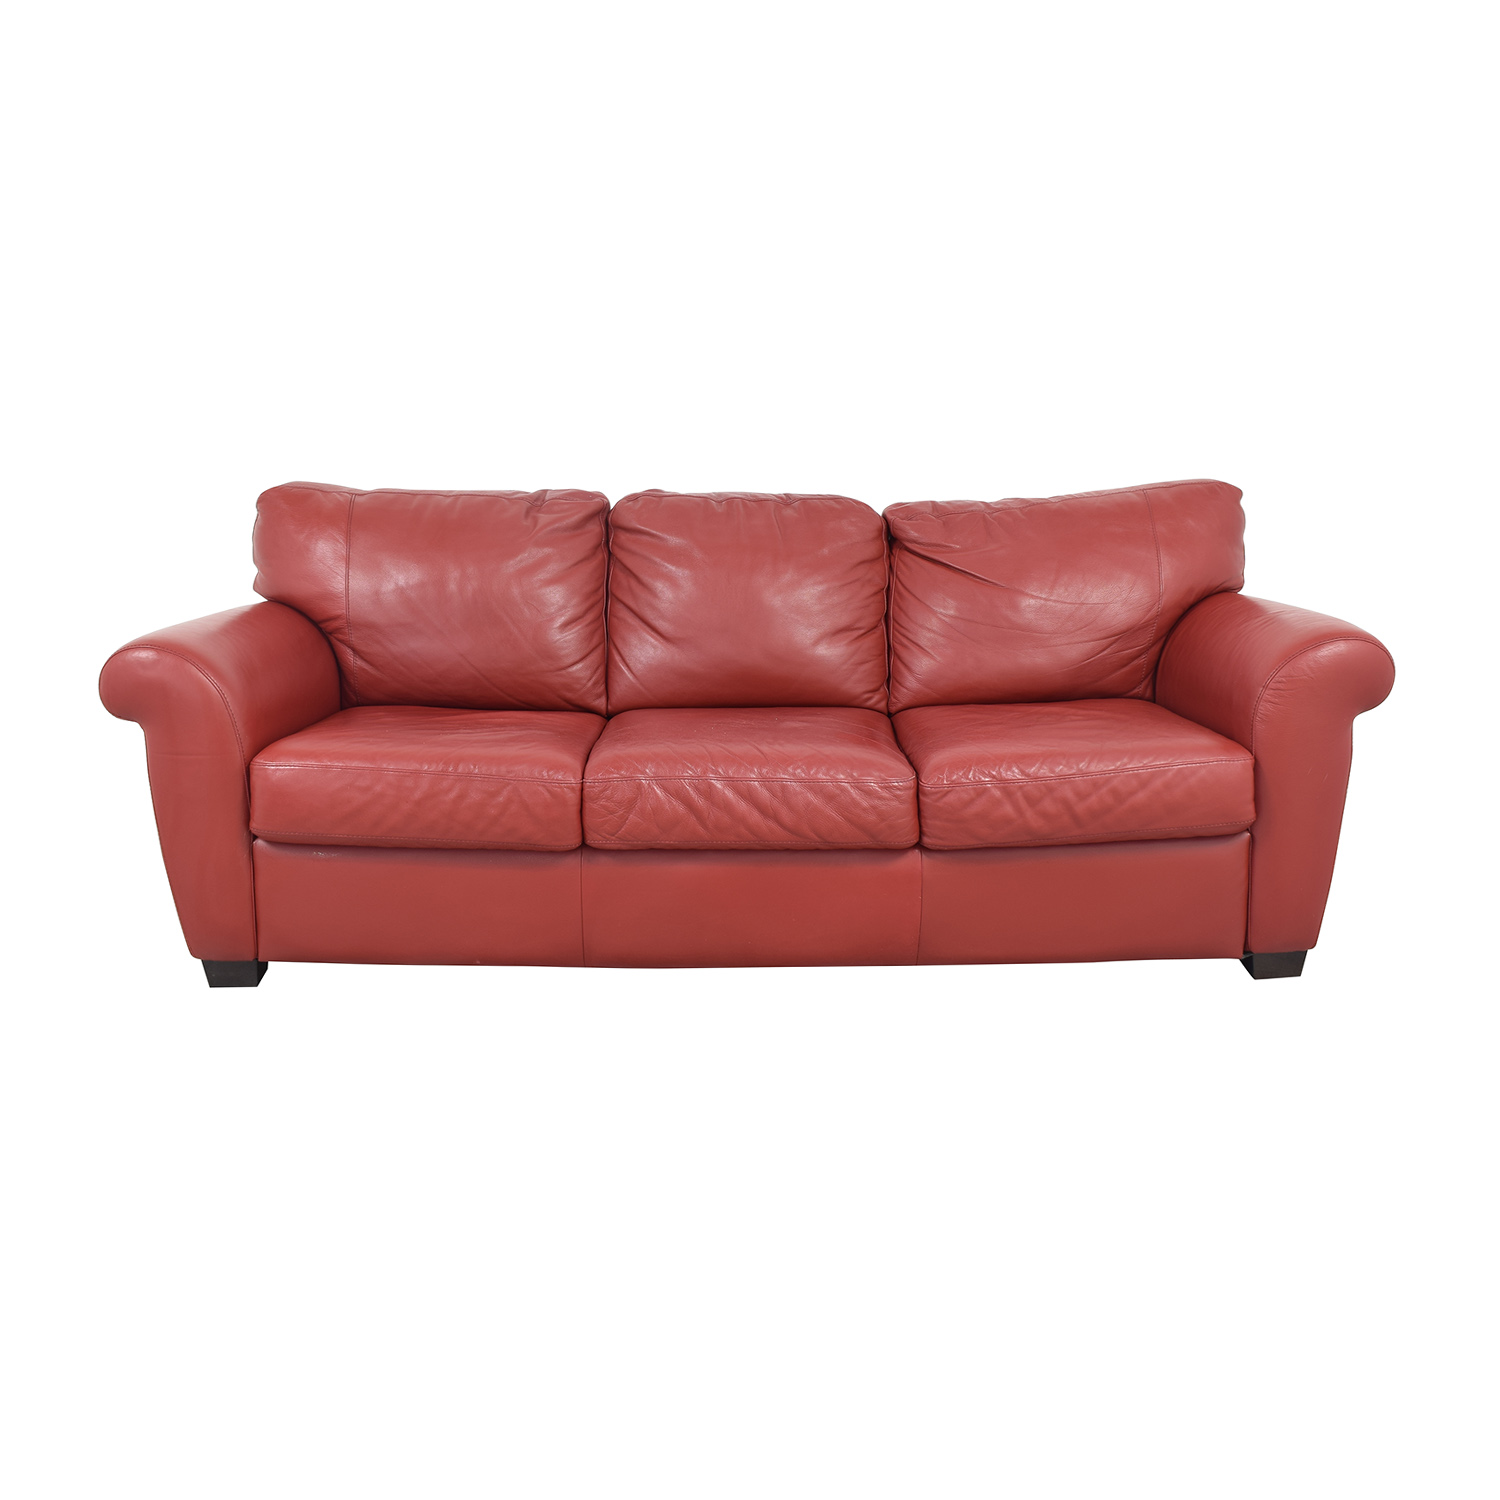 Natuzzi Natuzzi Three Cushion Sofa discount